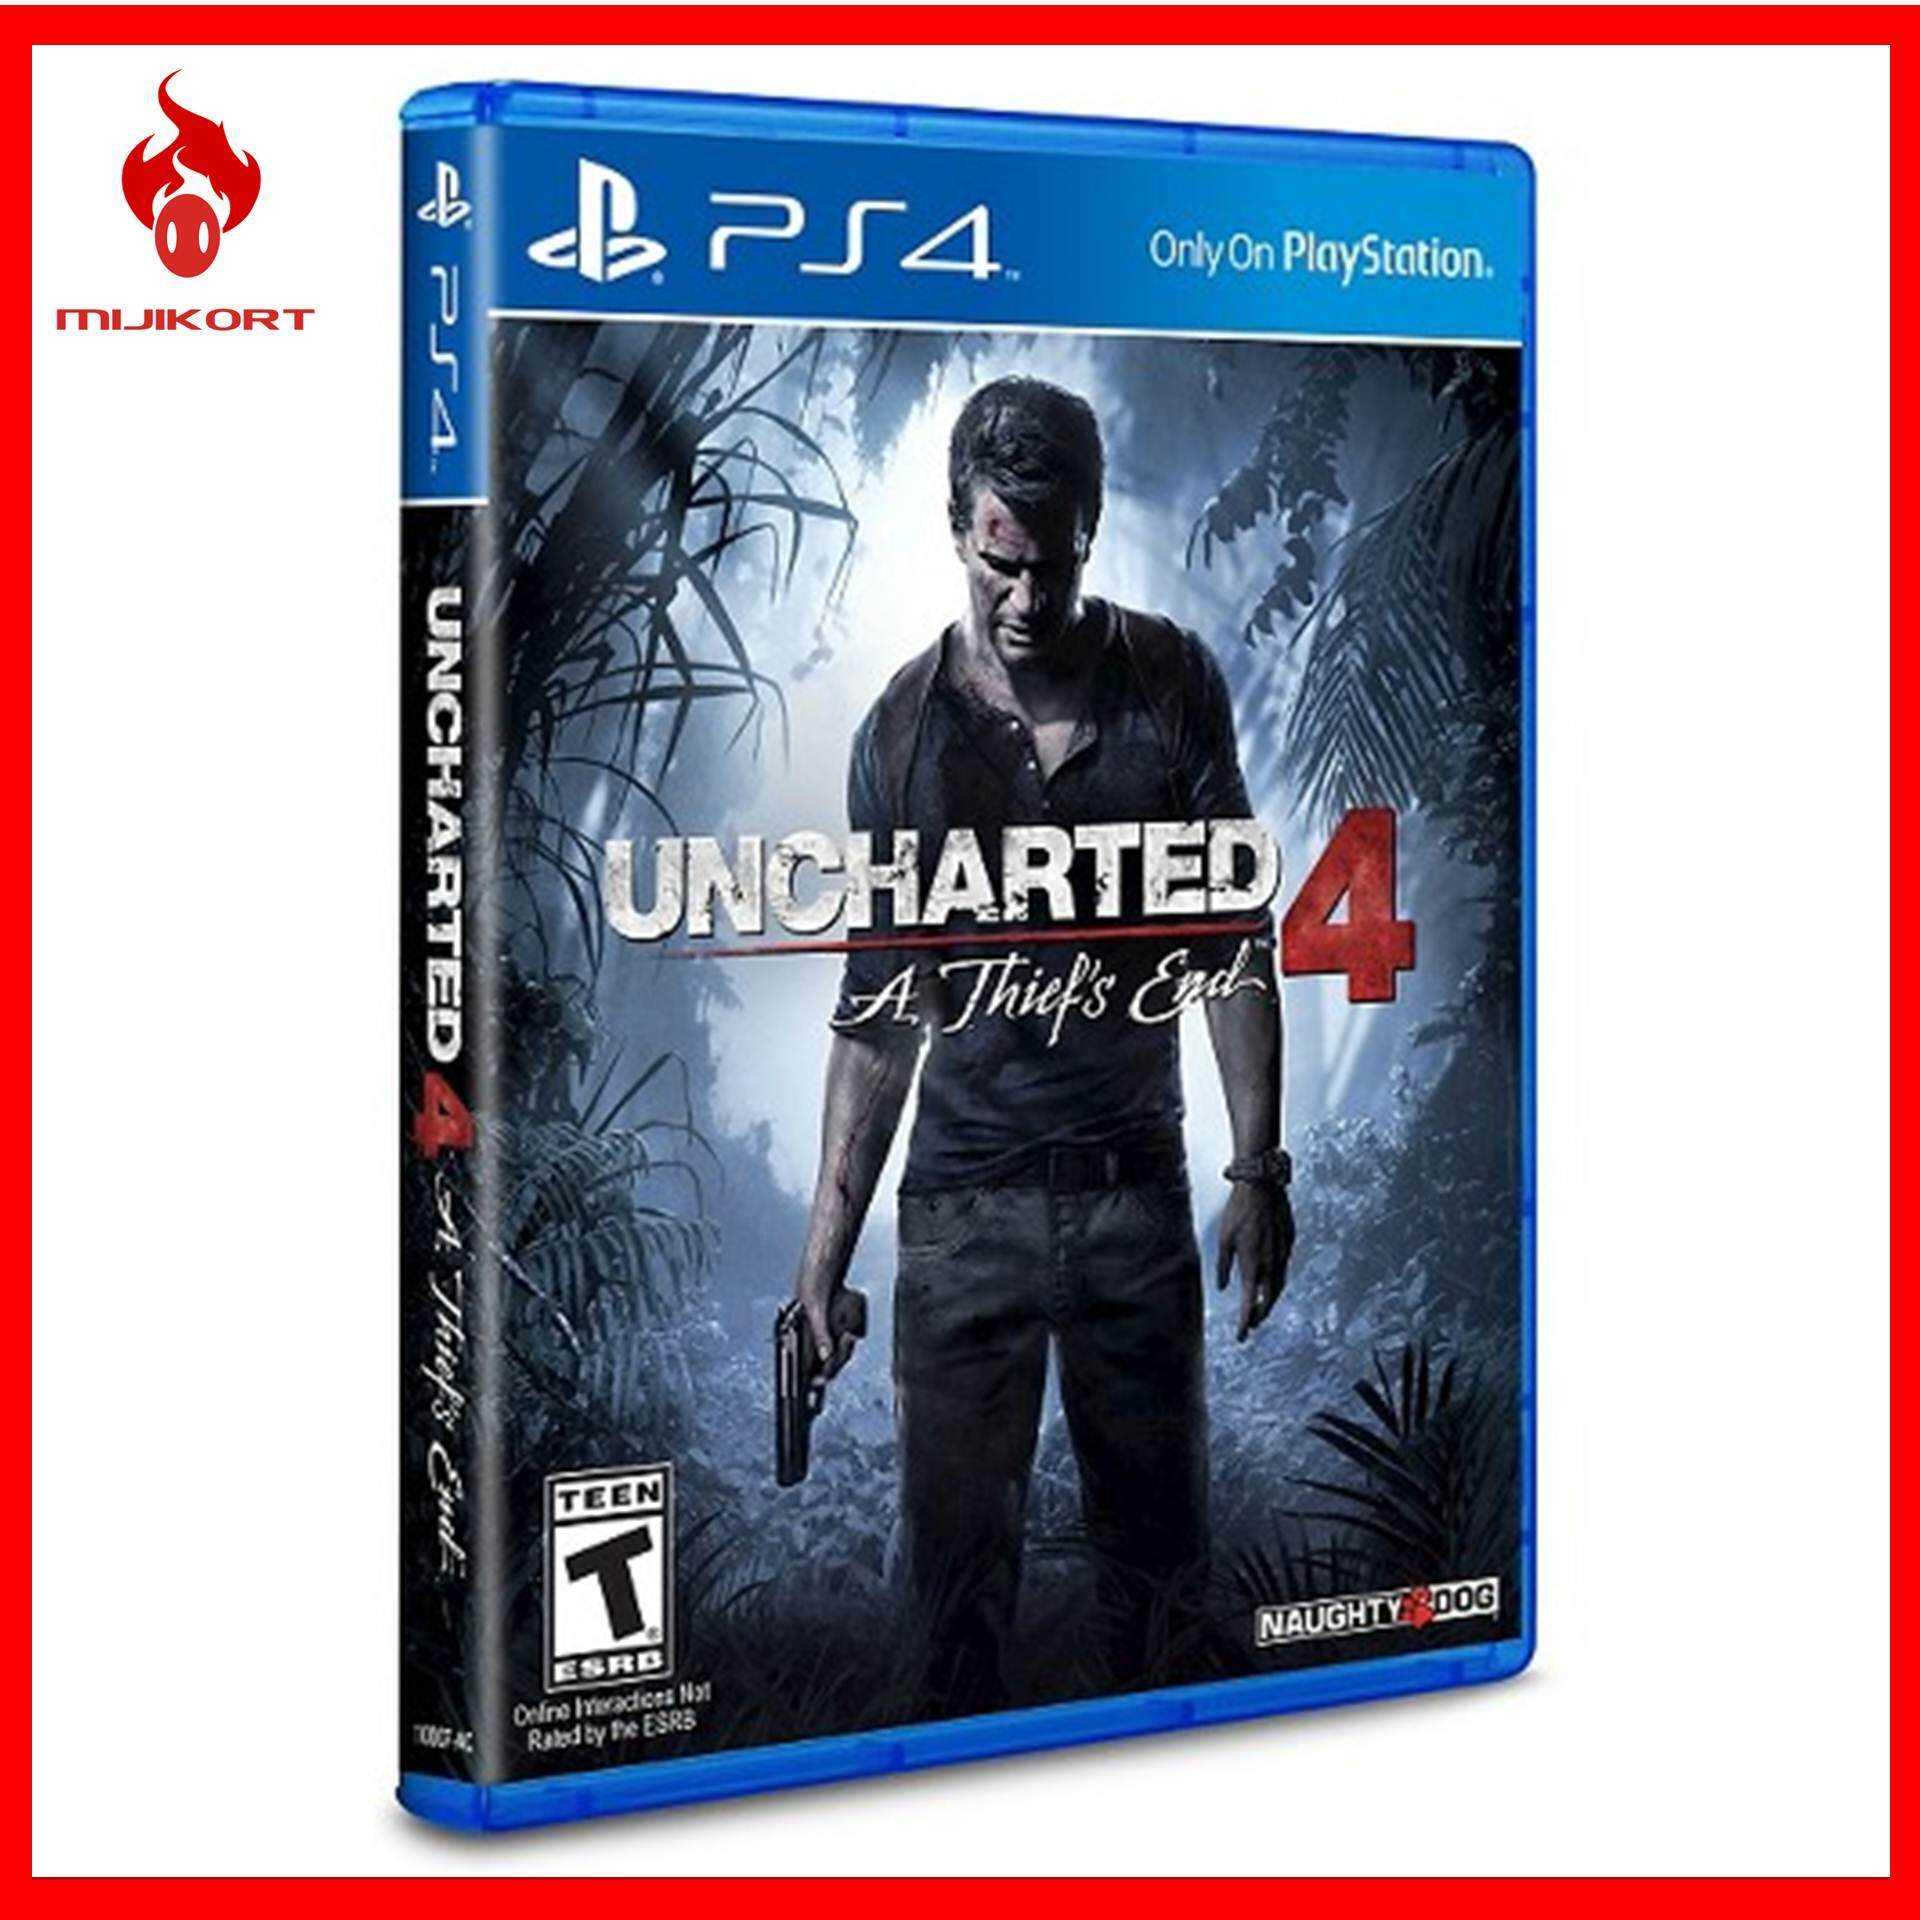 Sell Ps4 Uncharted The Cheapest Best Quality My Store Ps4uncharted 4 A Thief End Reg 3 All Myr 133